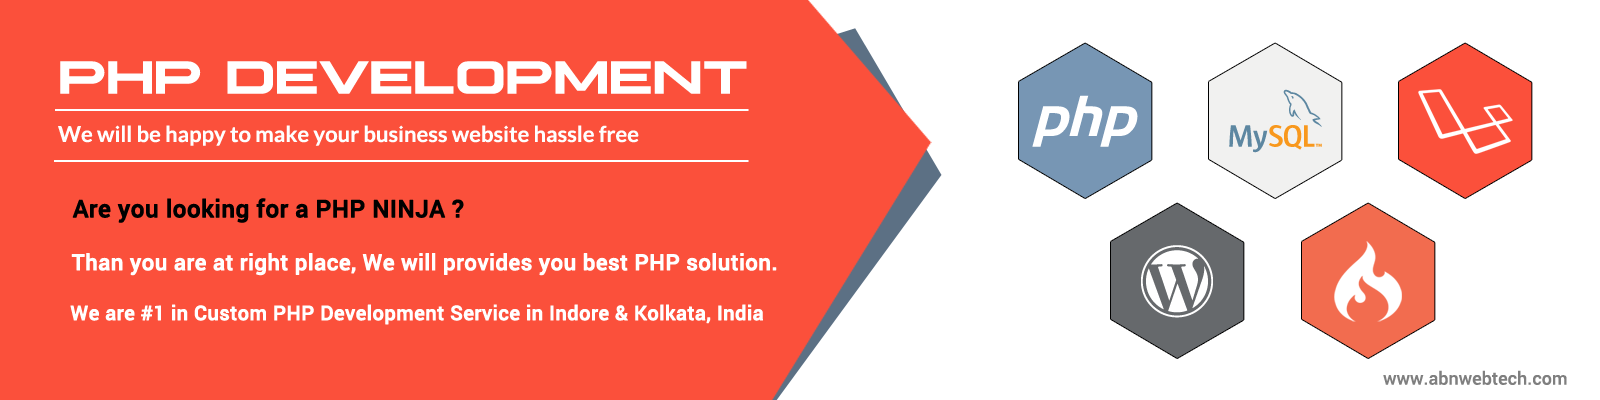 Custom PHP Development in Kolkata